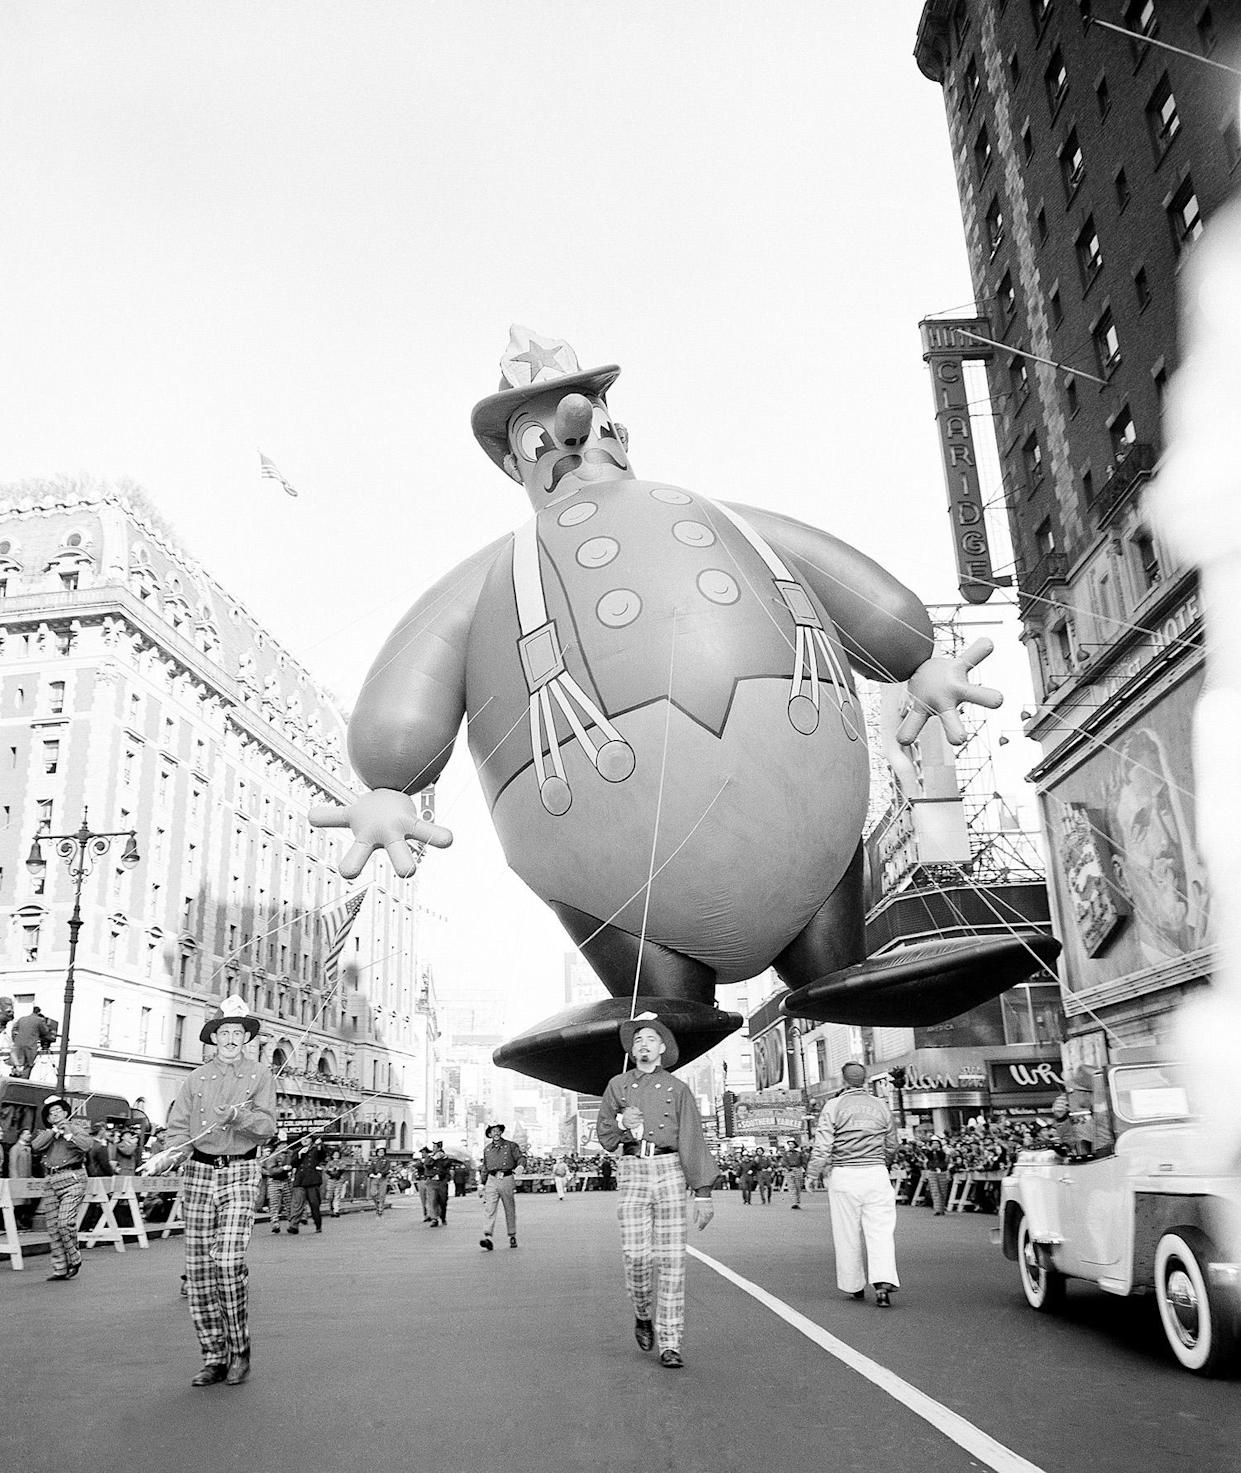 A huge balloon in the form of comic fireman floats over Broadway during the annual Macy's Thanksgiving Day Parade in New York, Nov. 25, 1948. (Photo: John Rooney/AP)